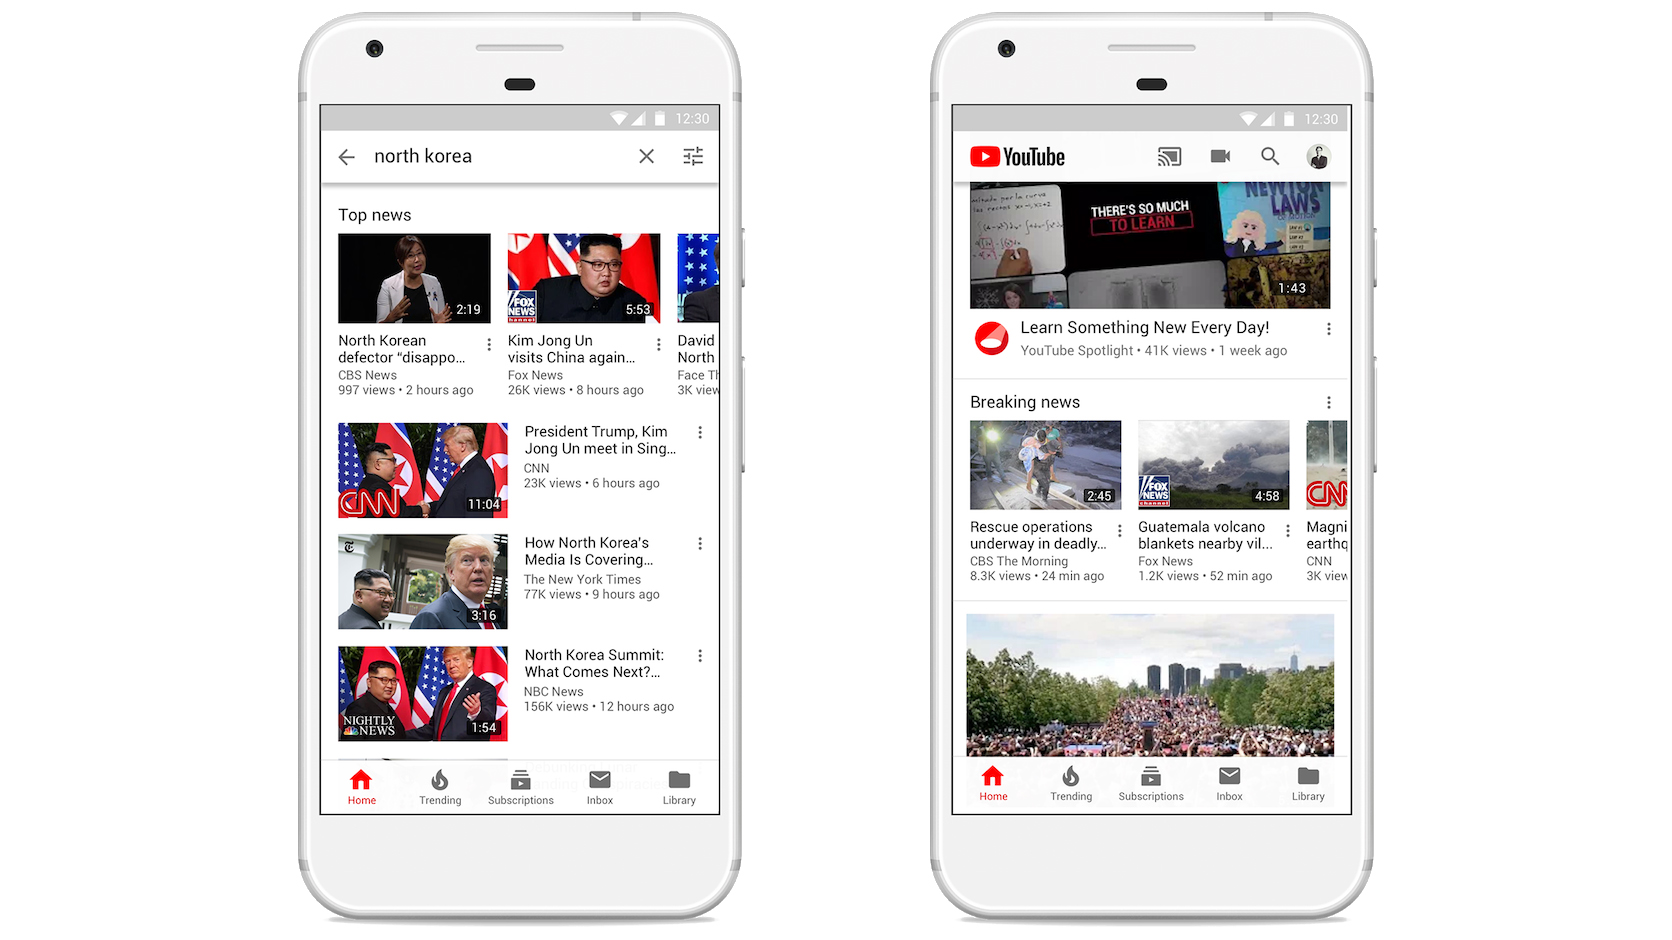 YouTube Top News and Breaking News